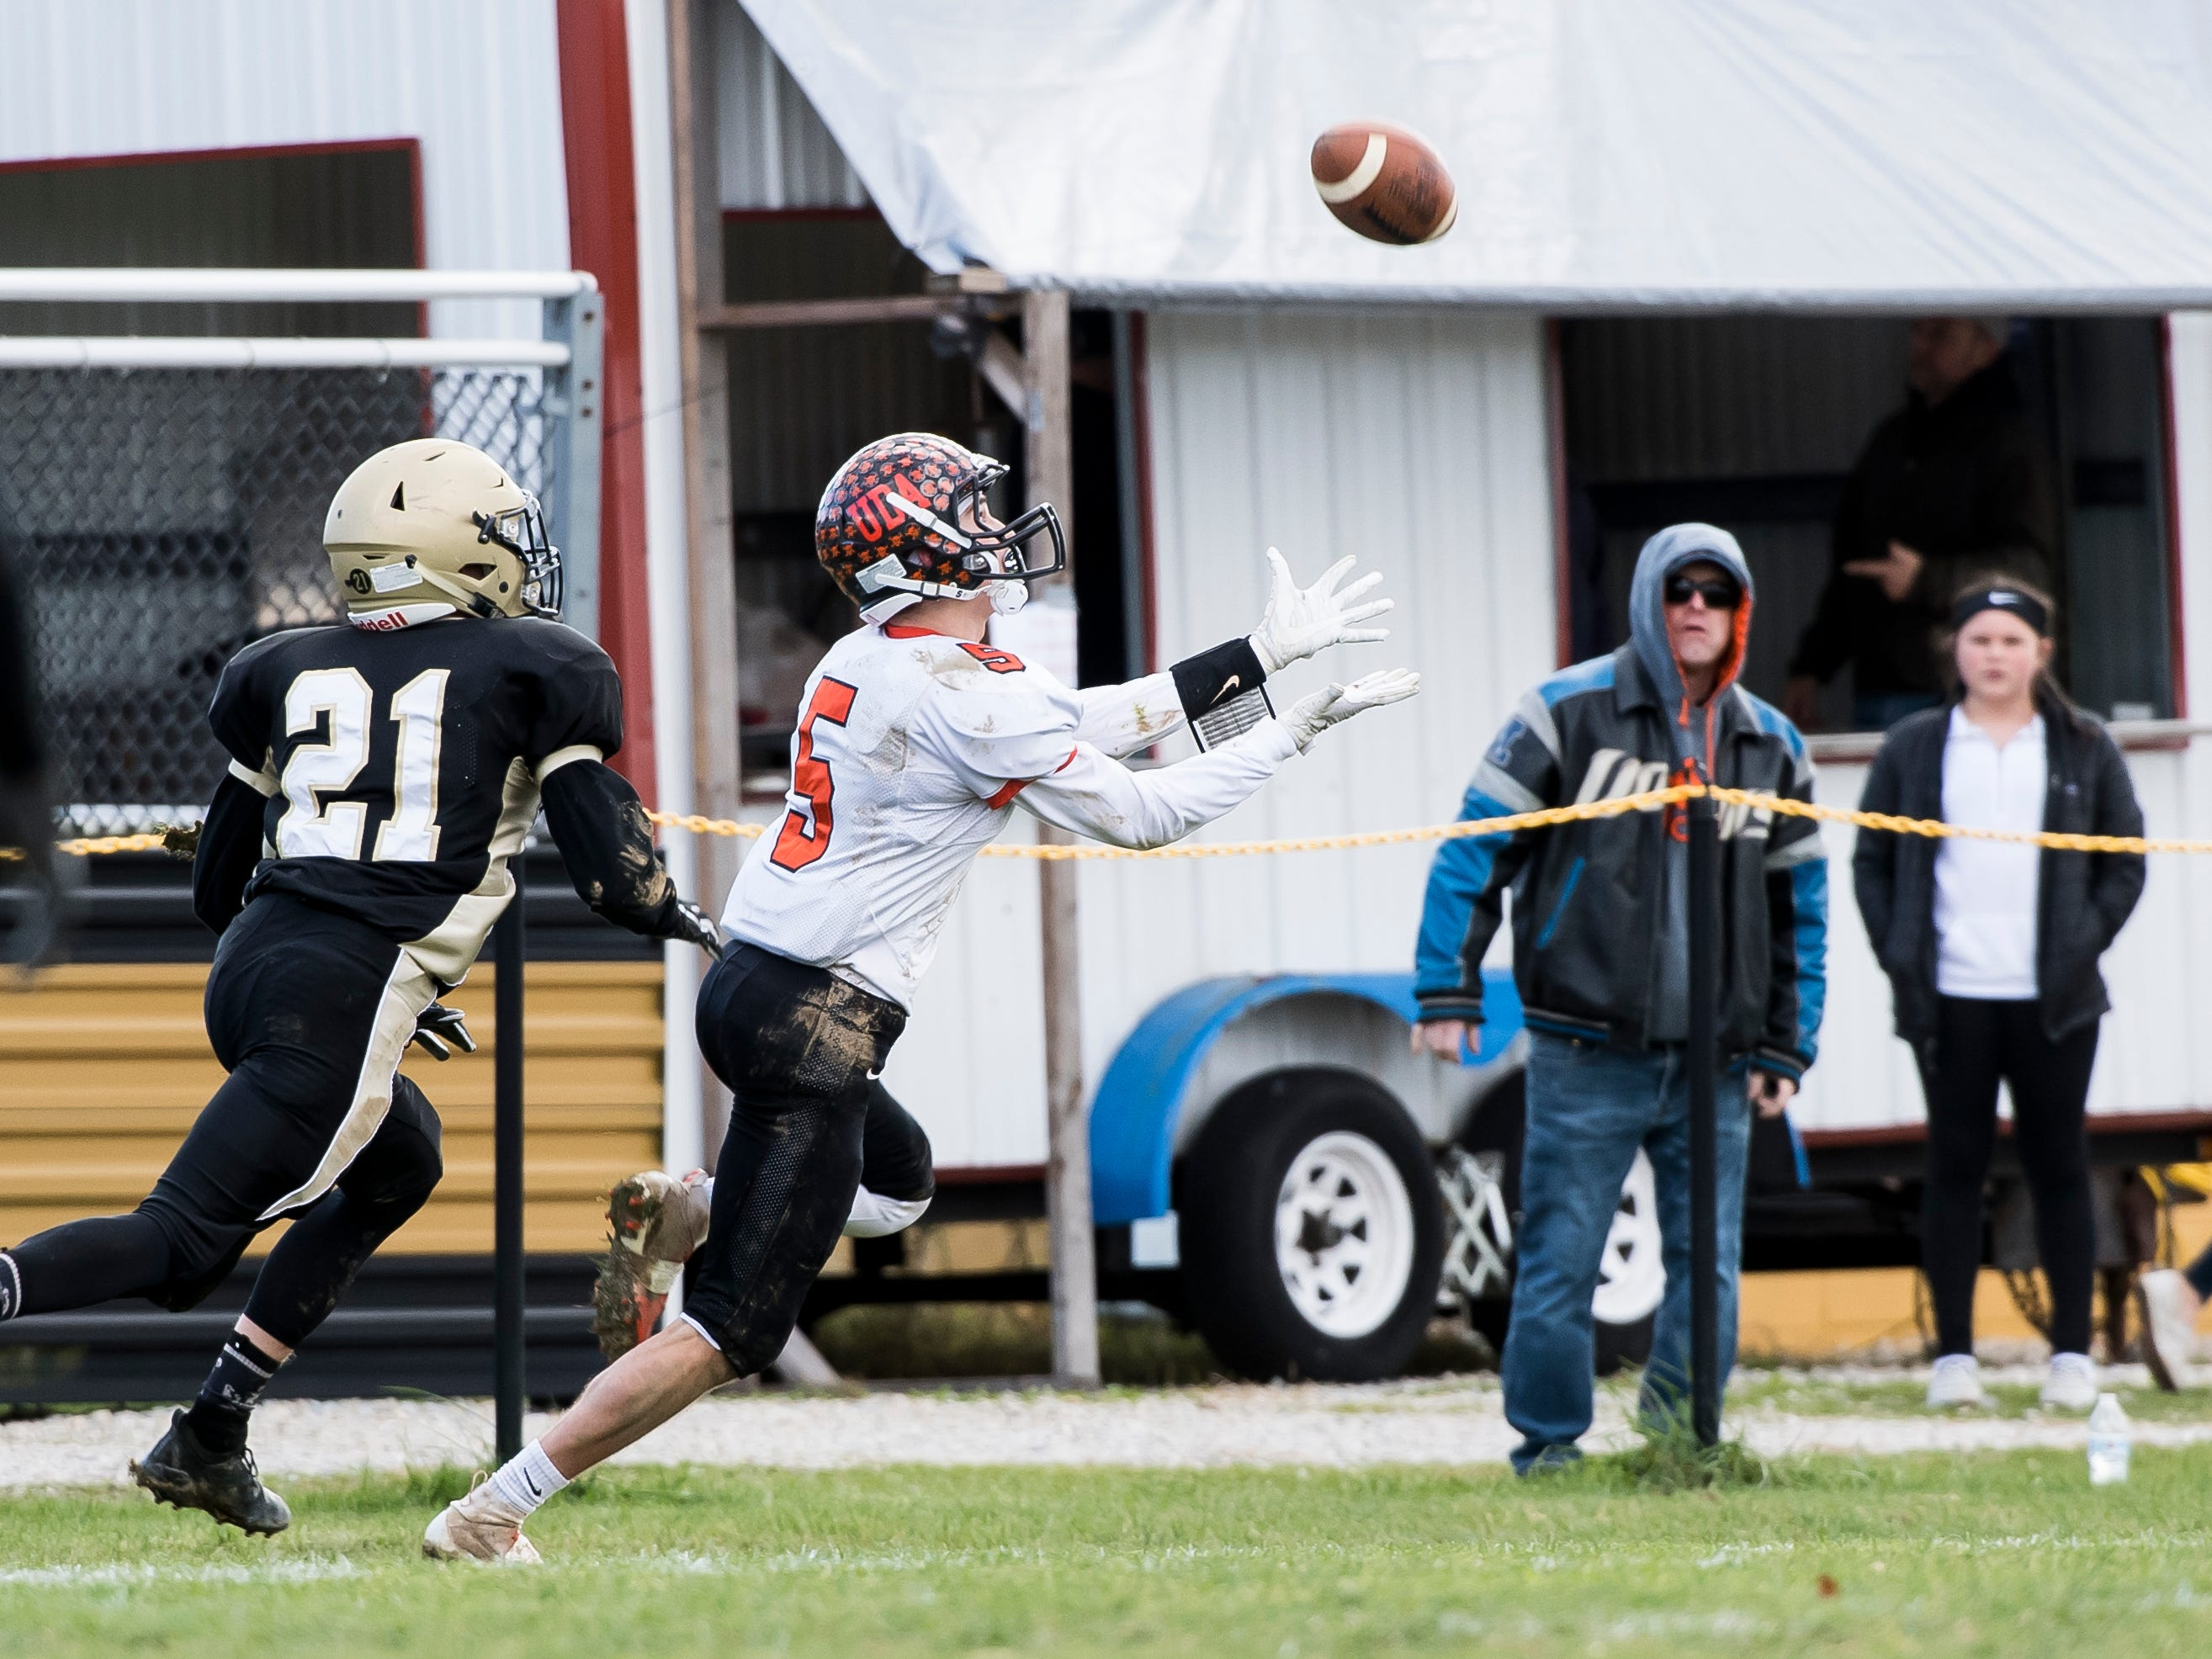 Upper Dauphin's Zach Rupp hauls in a catch during a District III Class 2A semifinal game against Delone Catholic on Saturday, November 3, 2018. The Squires won 48-23.